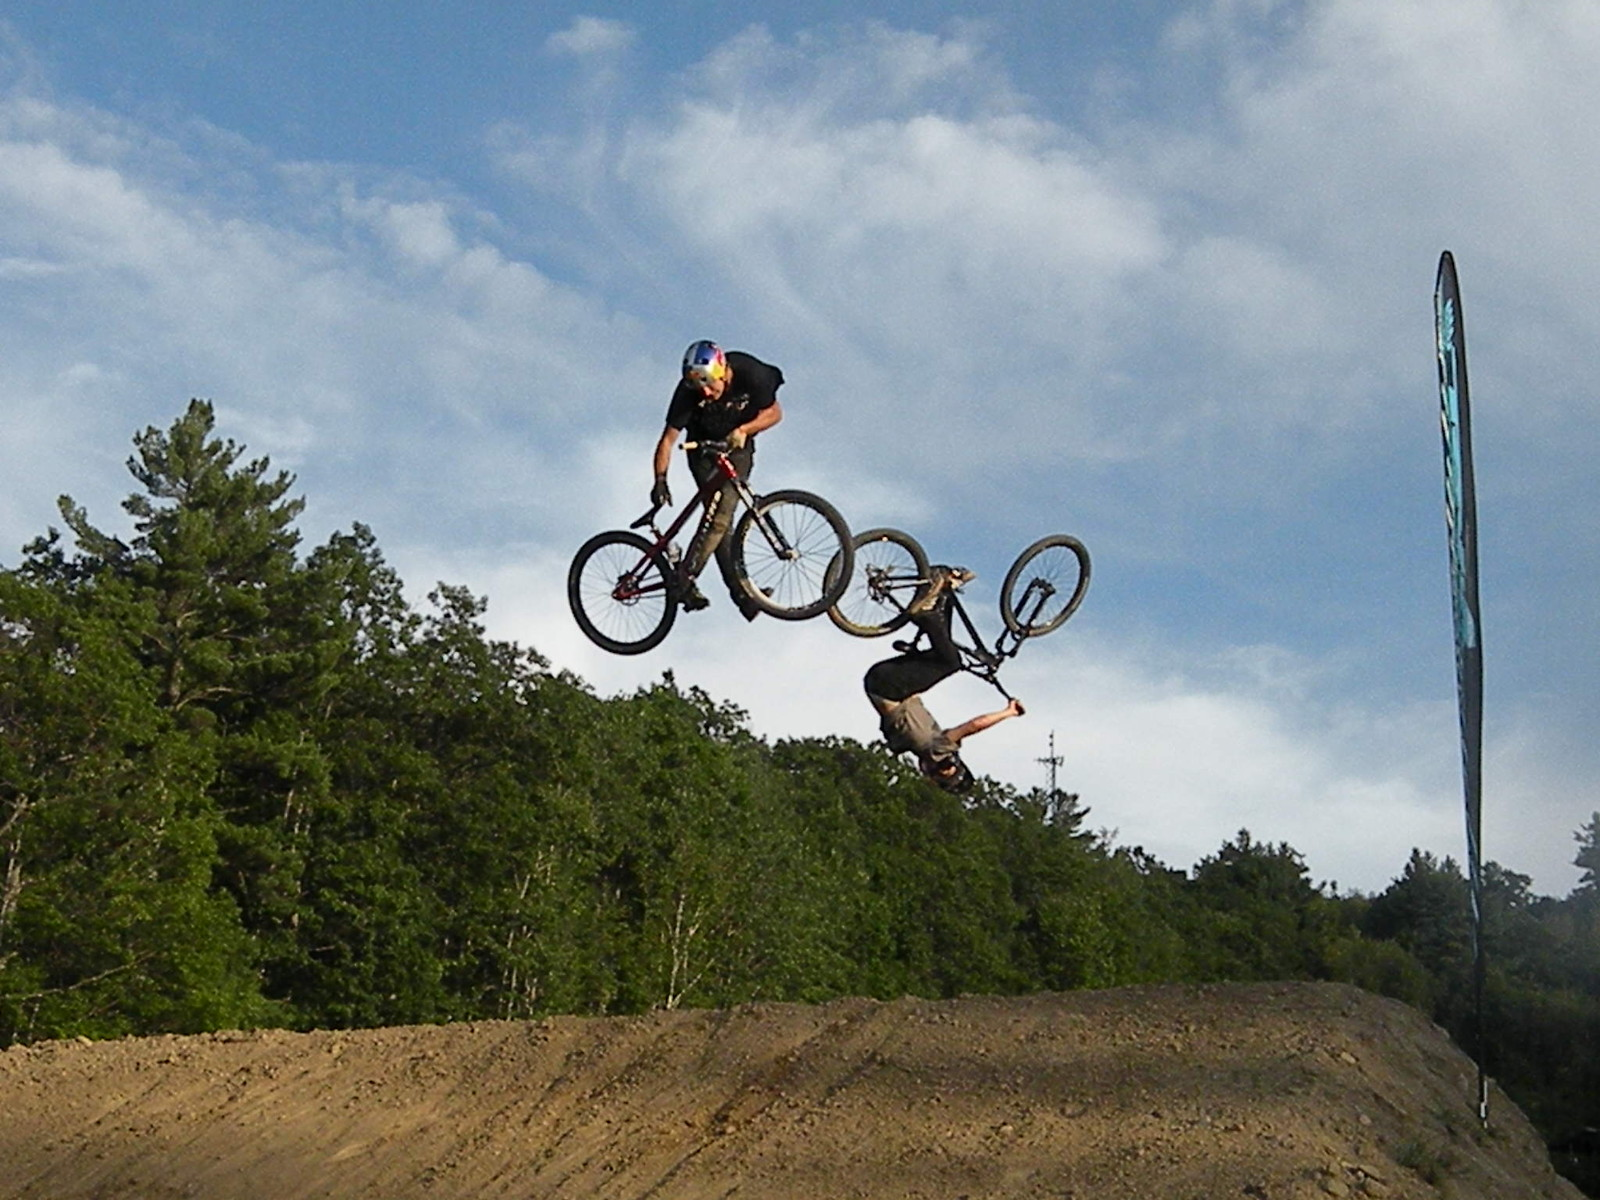 Teva best trick session at Highland - stuntfiend - Mountain Biking Pictures - Vital MTB